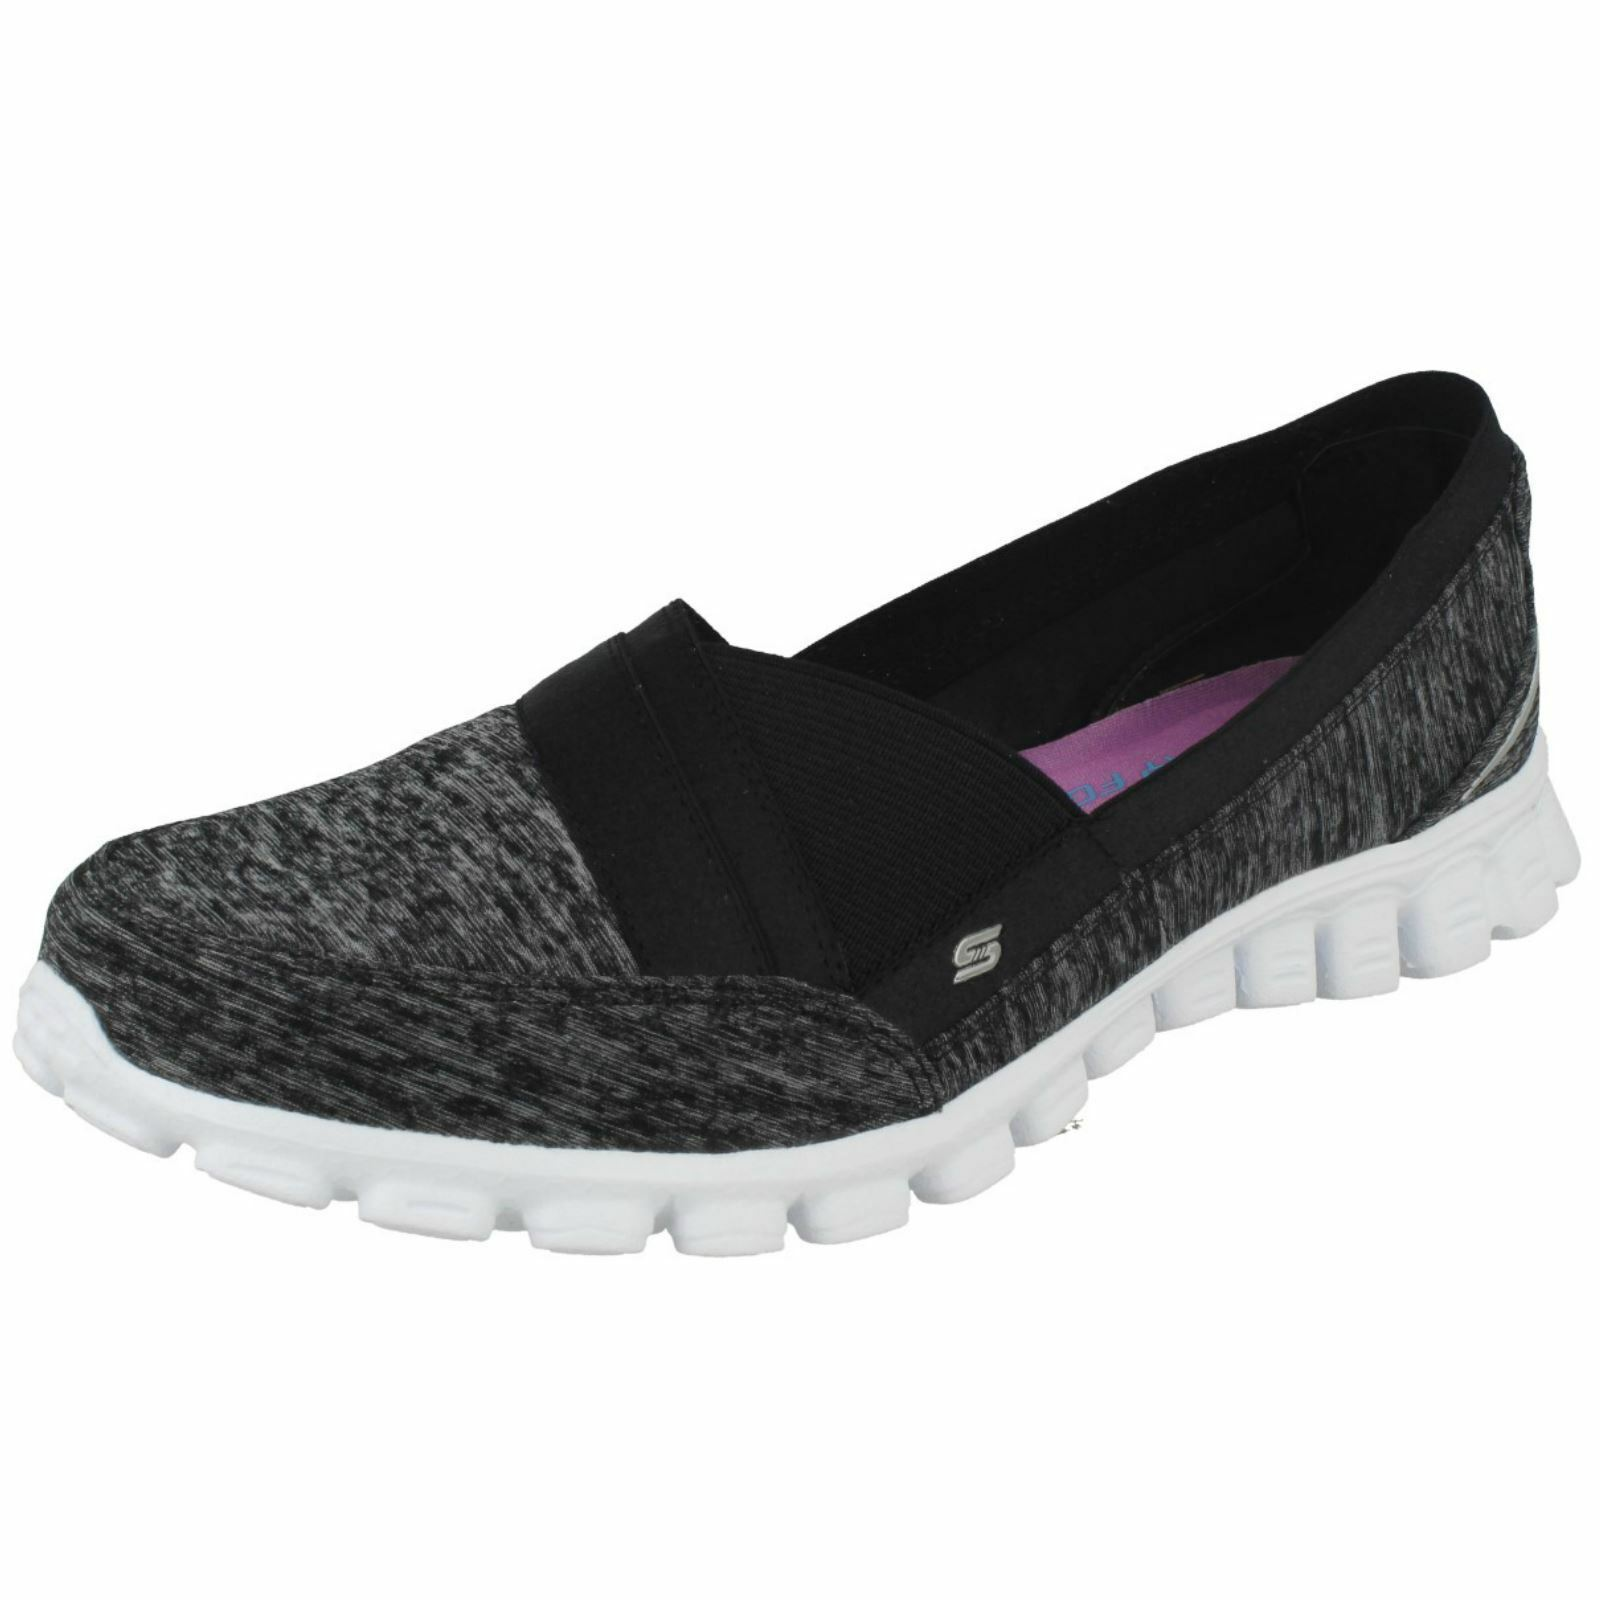 Ladies Skechers Casual shoes EZ Flex- Fascination- Label 22827